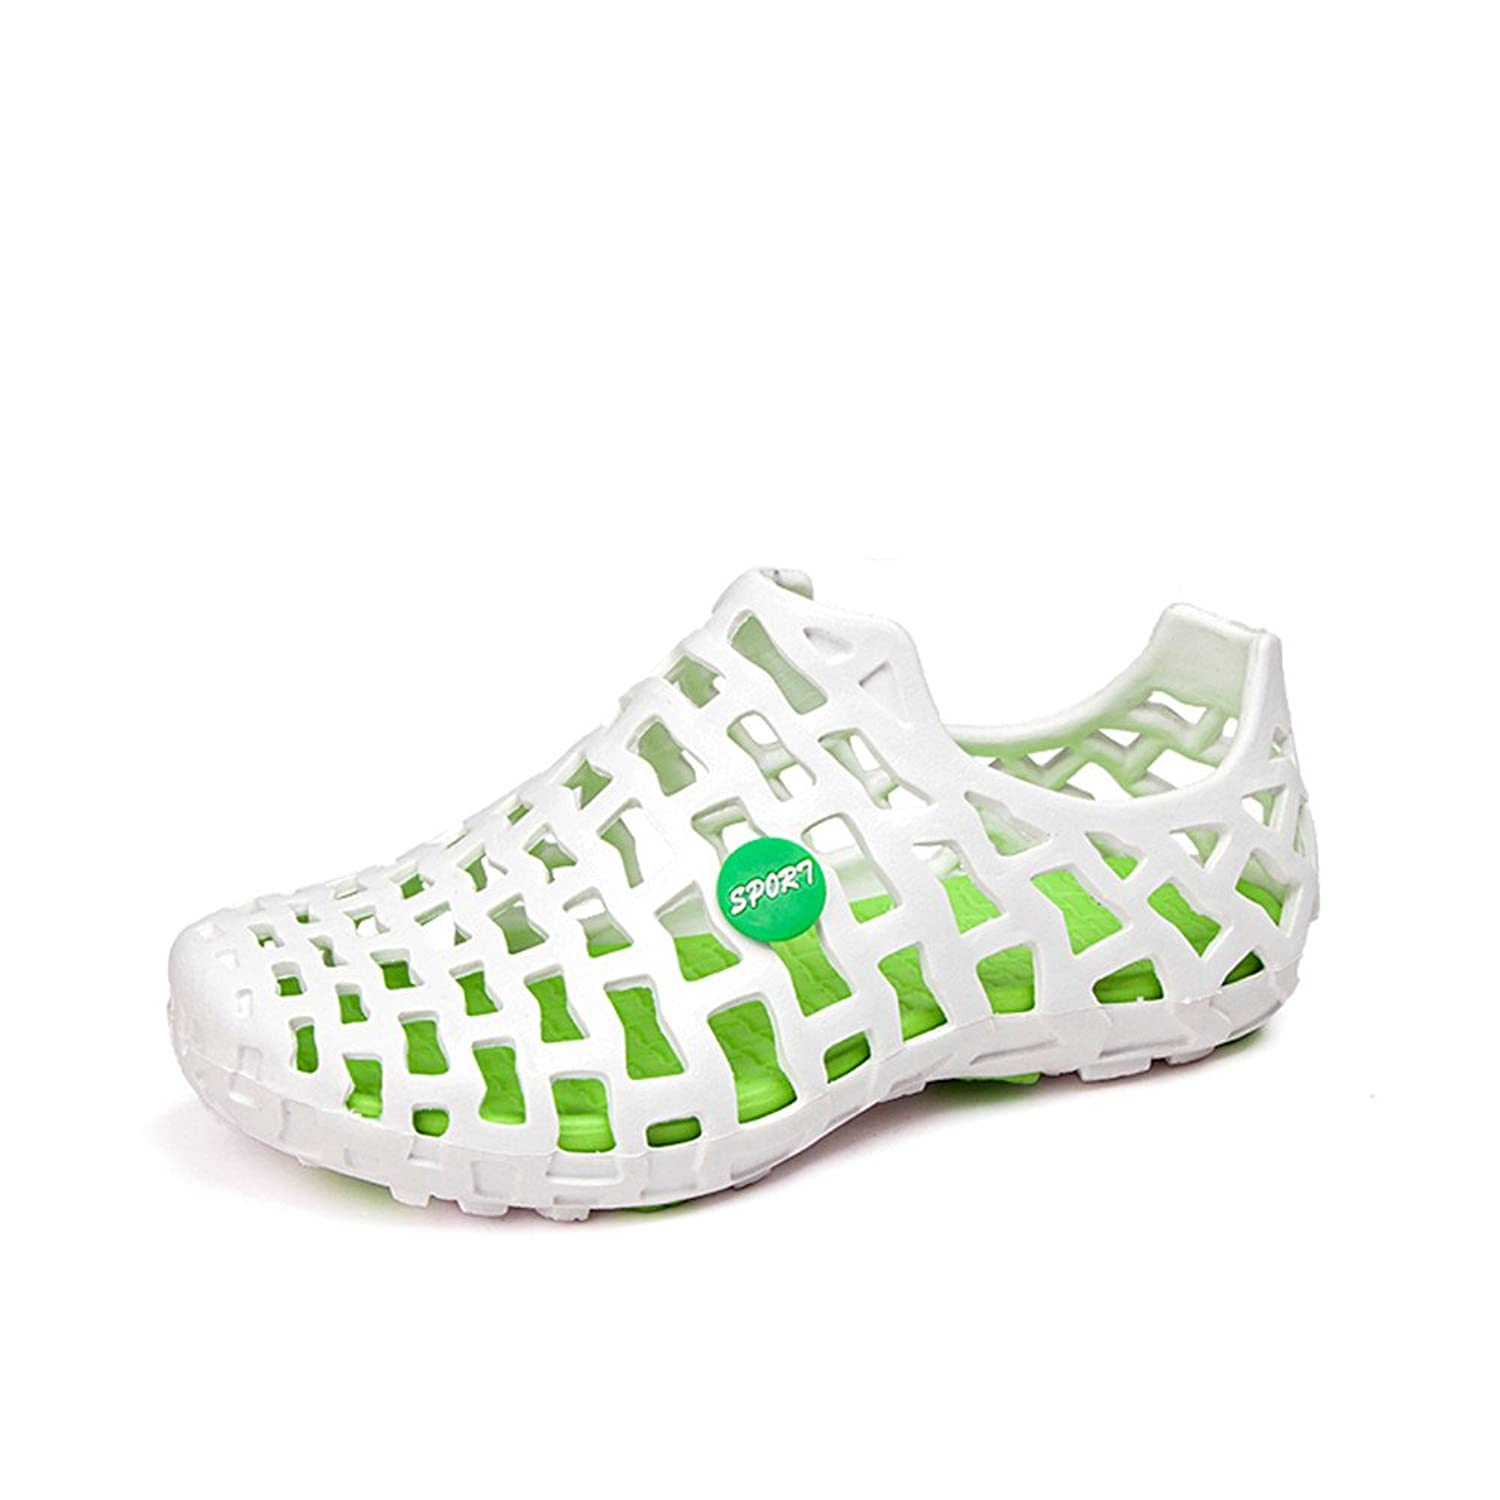 TooTa Mens's And Women's Mesh Casual Beach Water Shoes